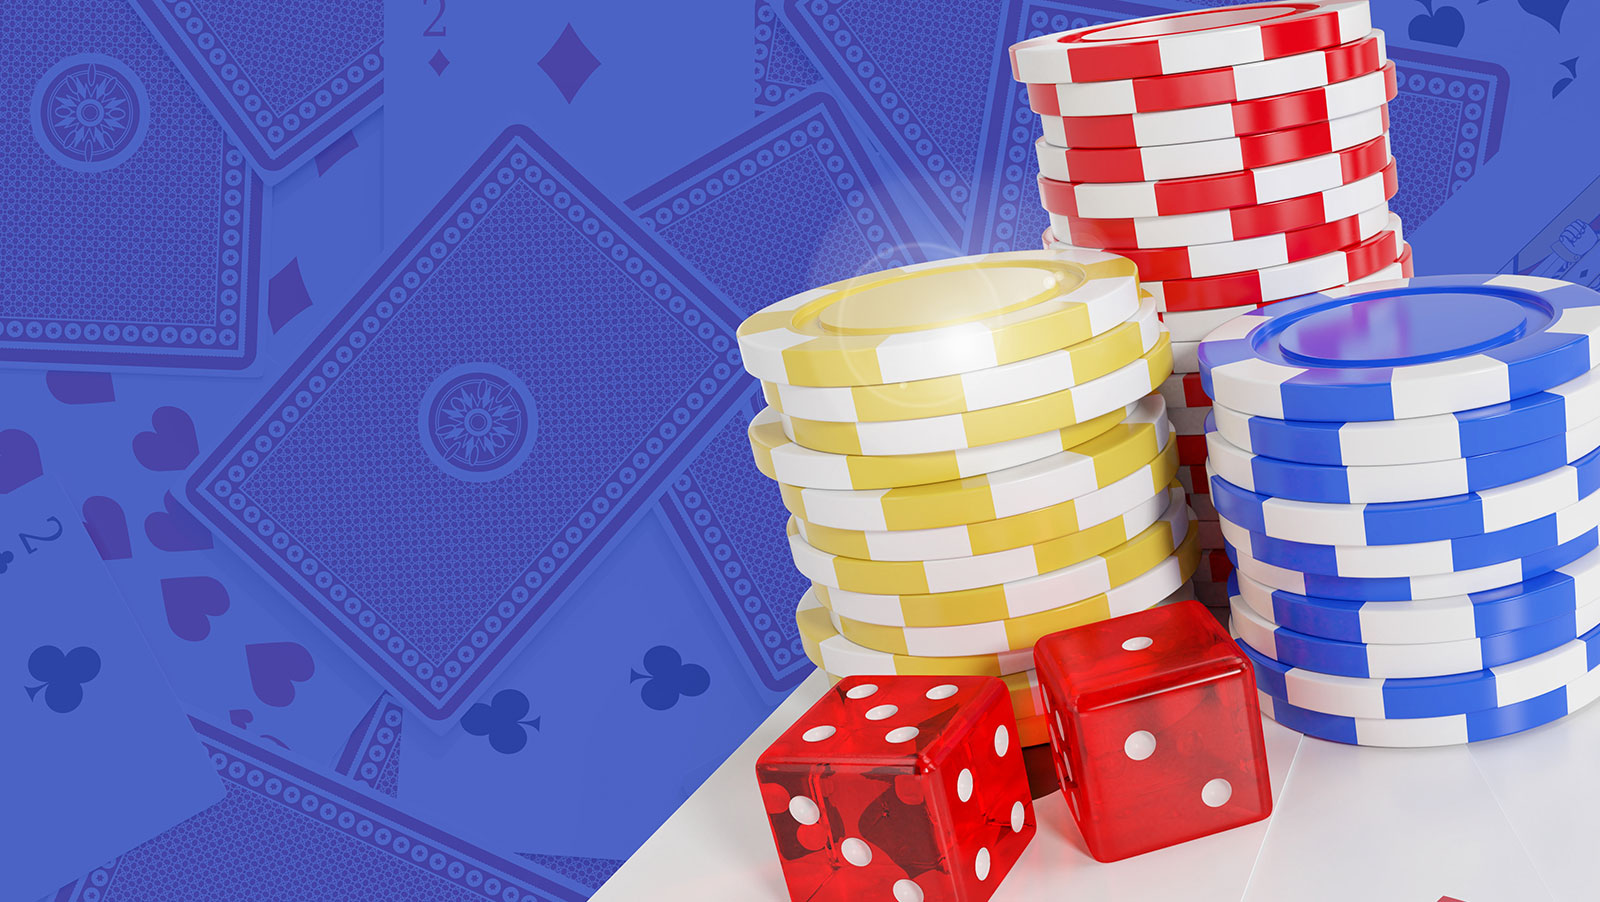 PokerStars to change seating scripts, and time to act policies